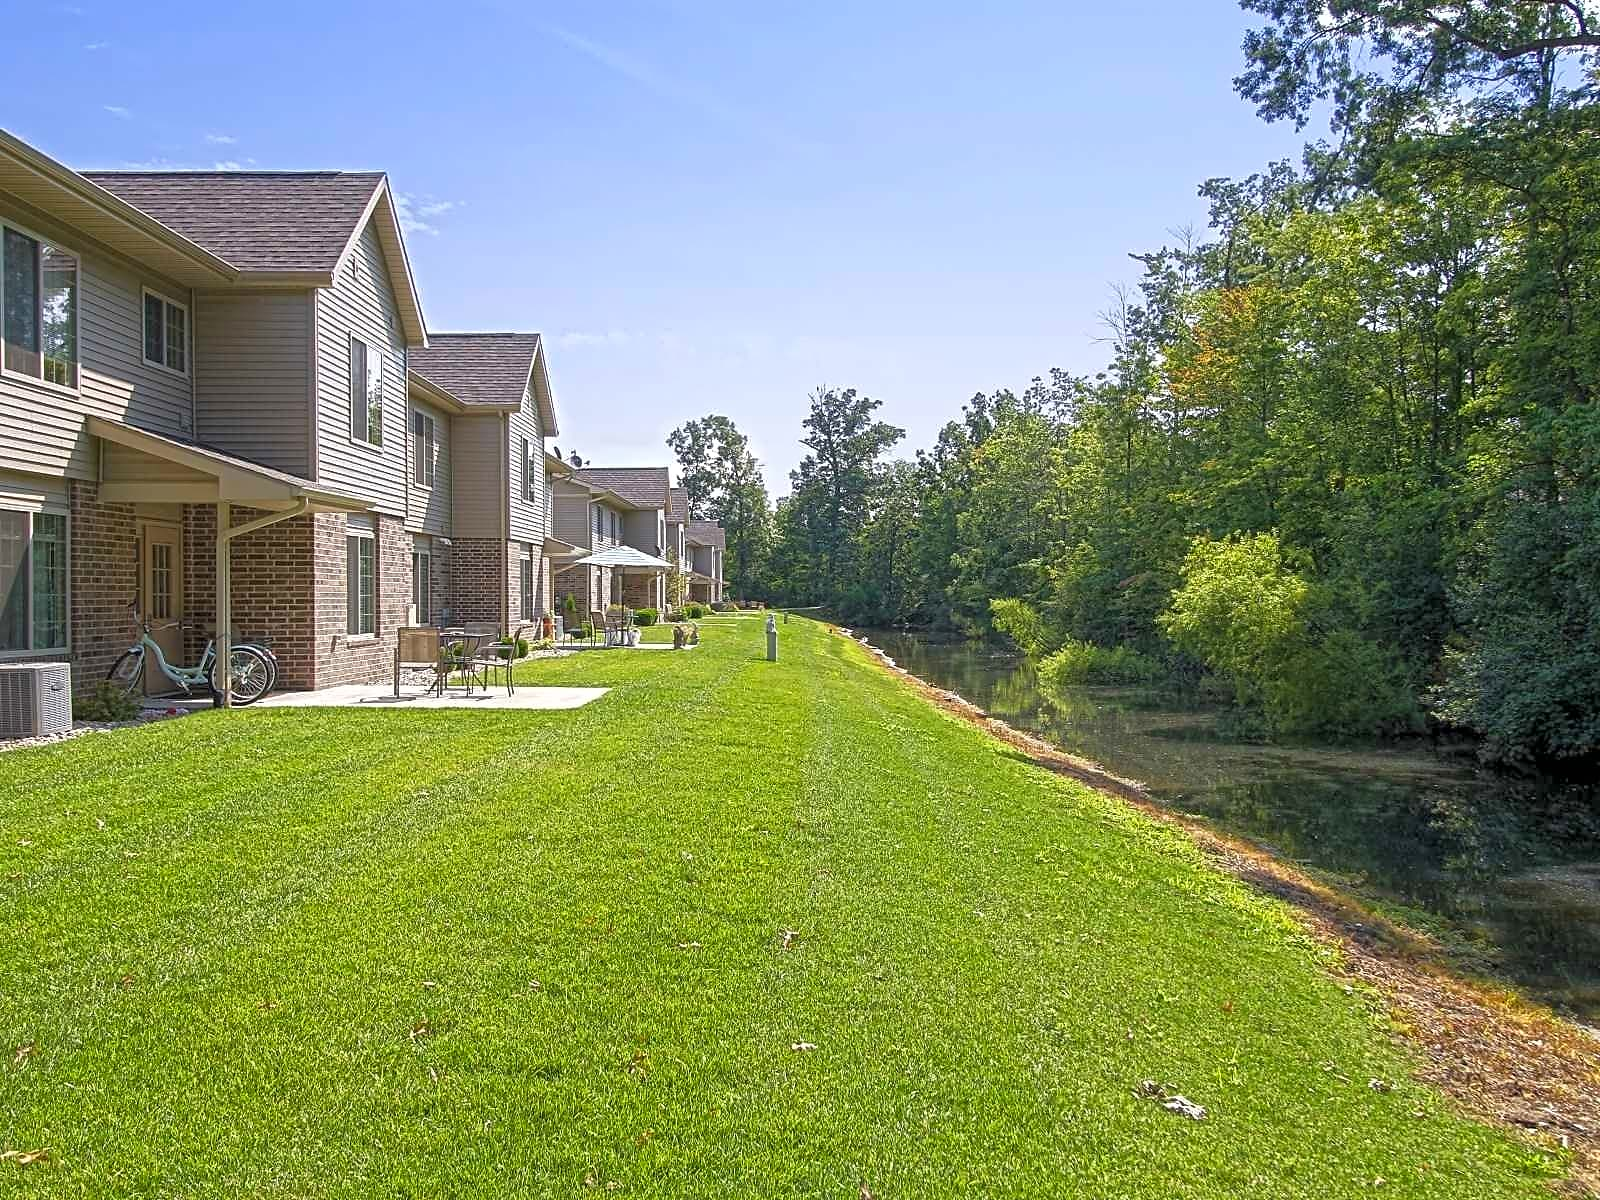 Apartments Near IU South Bend Whispering Pines for Indiana University South Bend Students in South Bend, IN